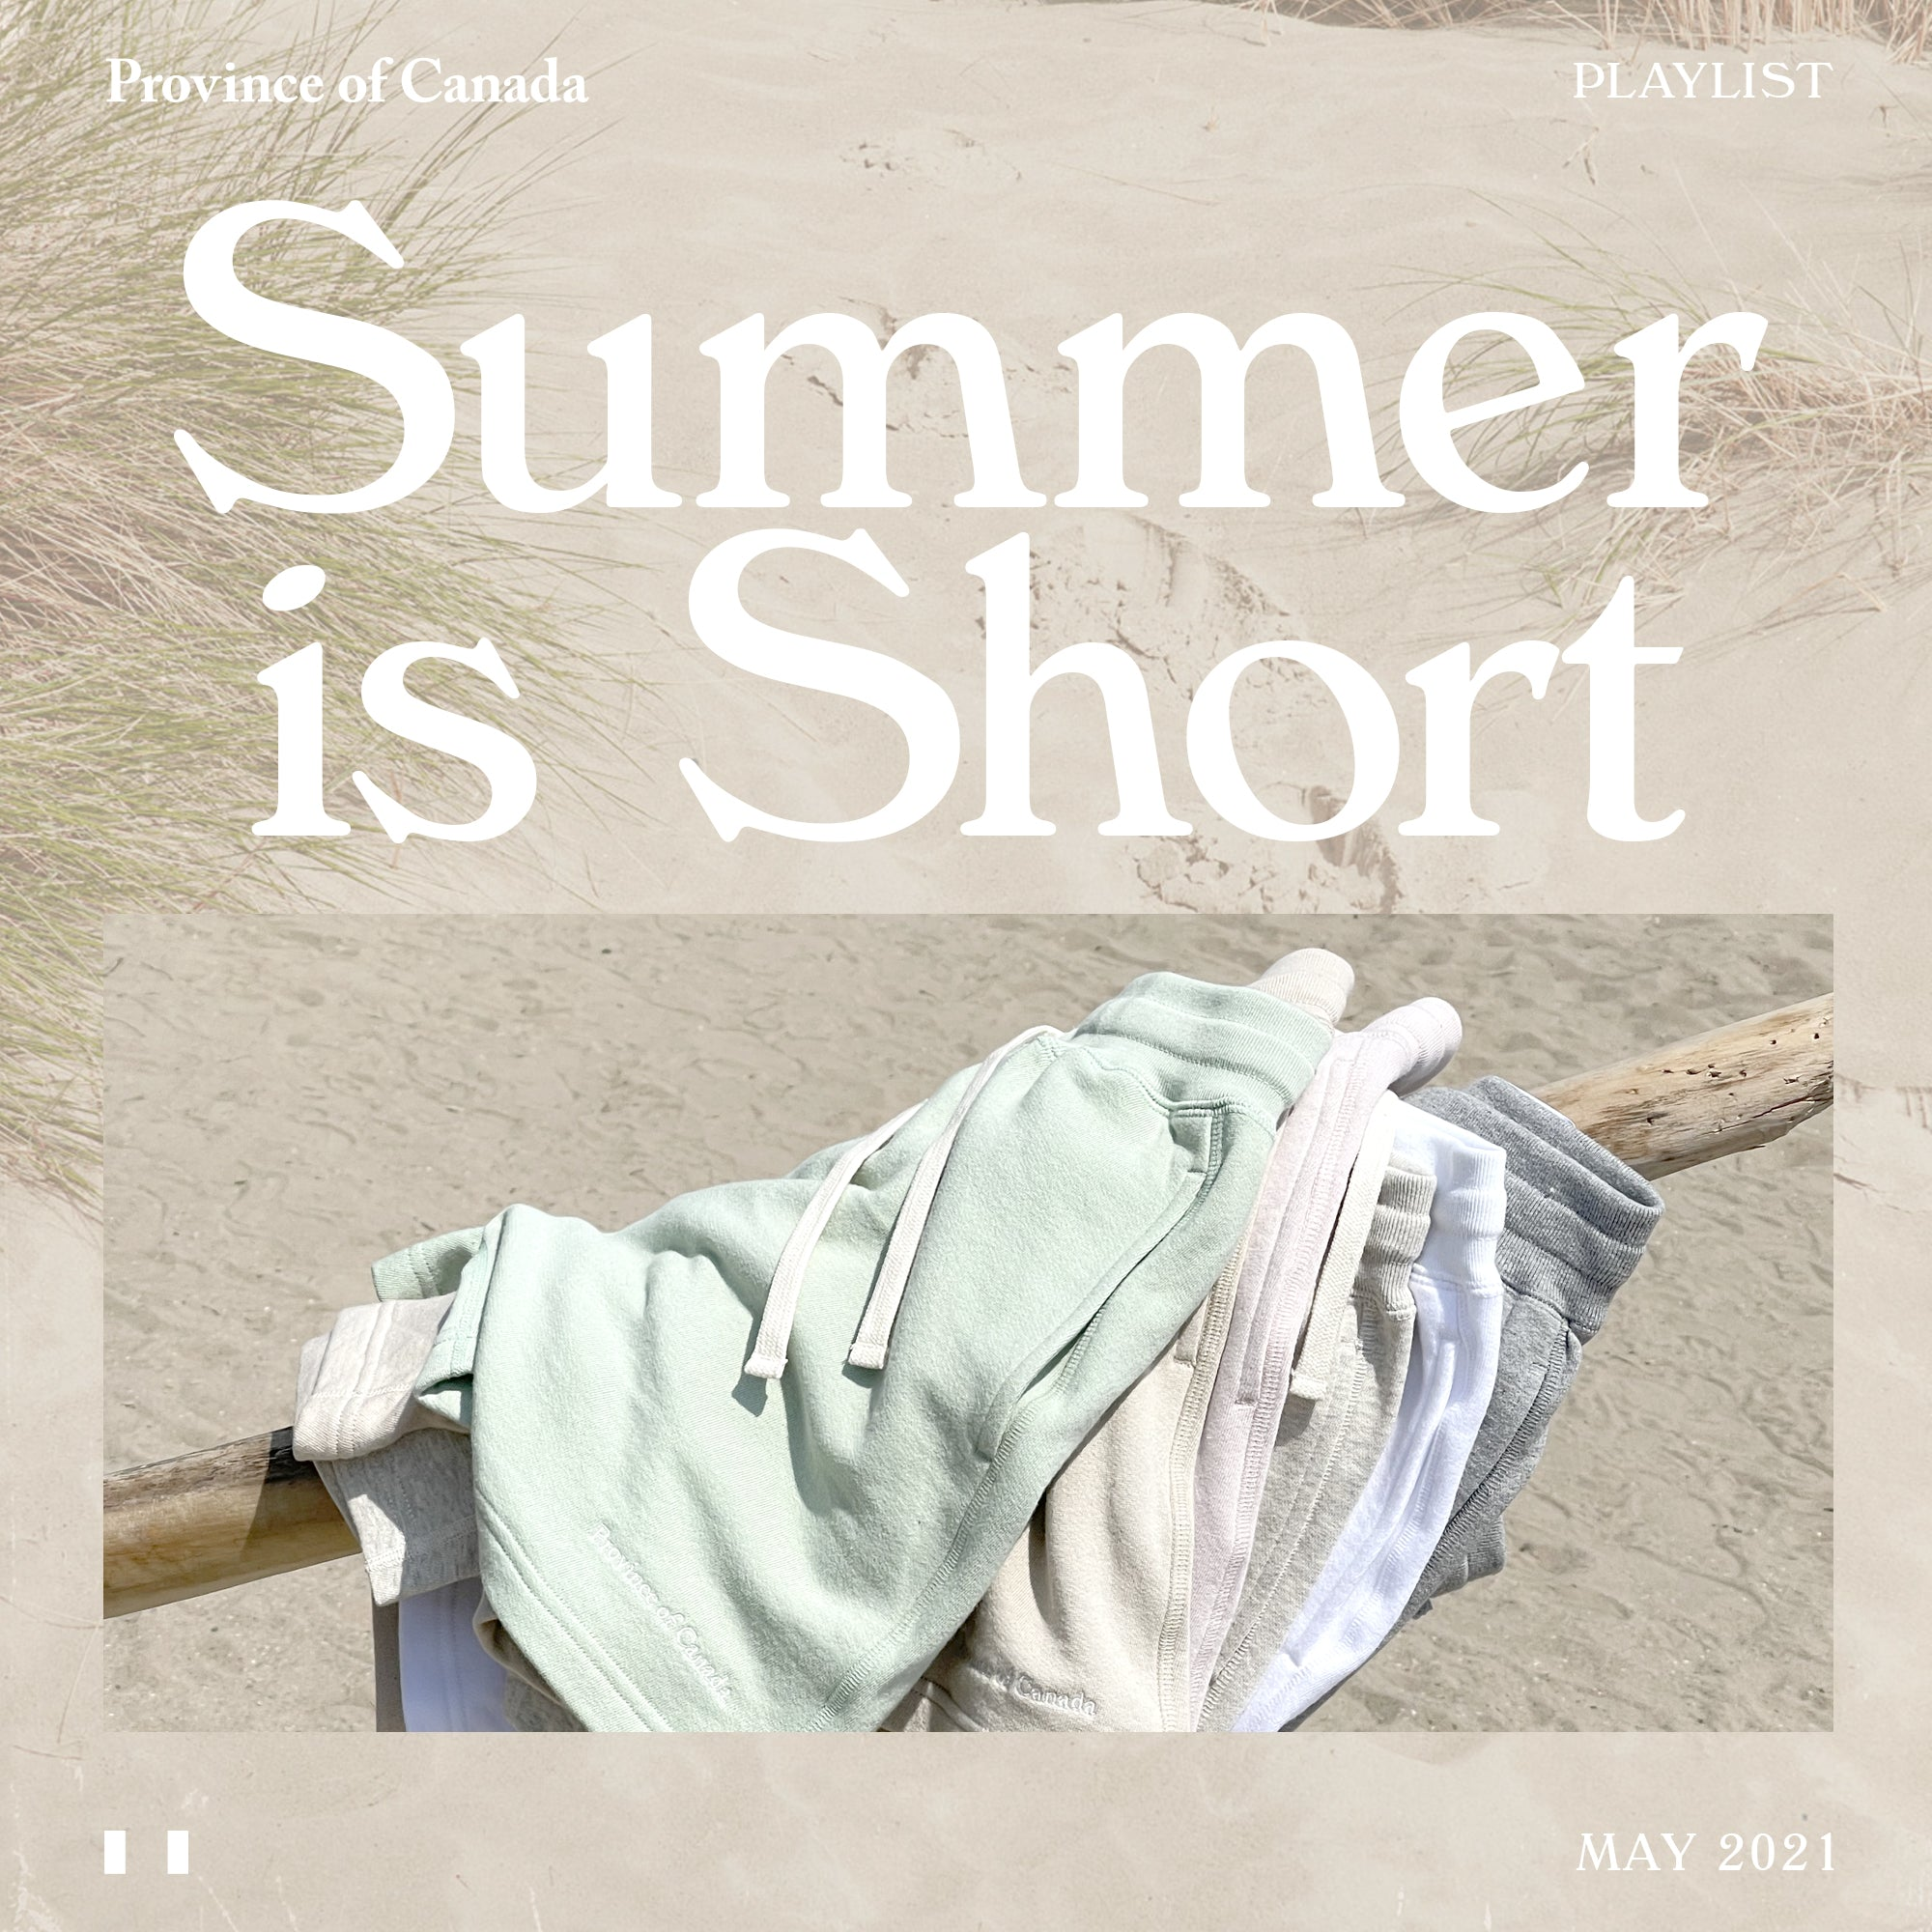 Province of Canada - Playlist - Summer is Short